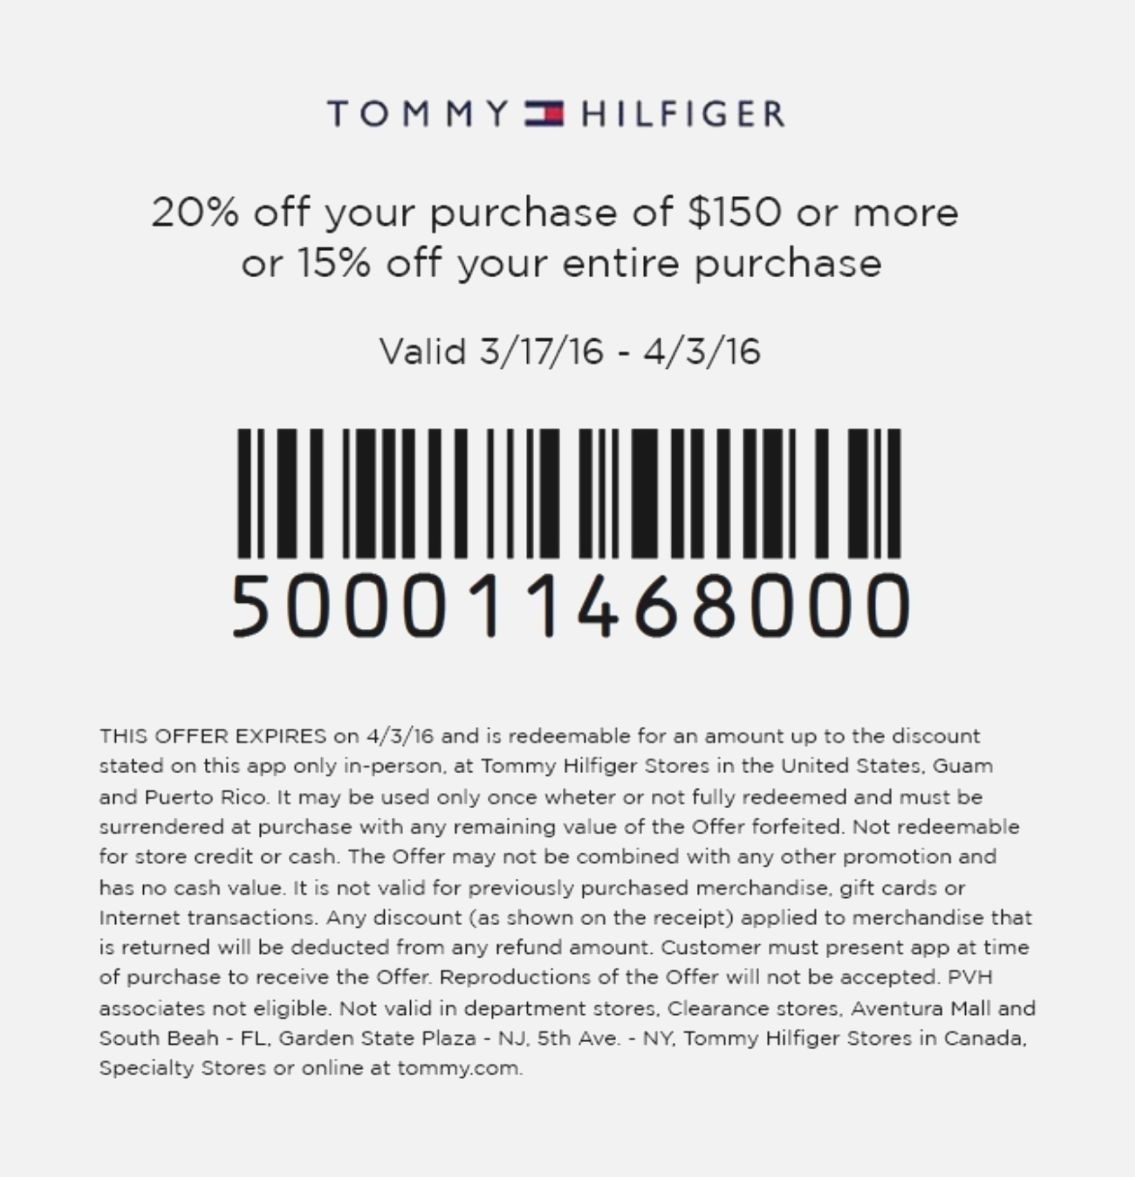 Exceptional Tommy Hilfiger Outlet Printable Coupon | Jeettp - Printable Thangles Free